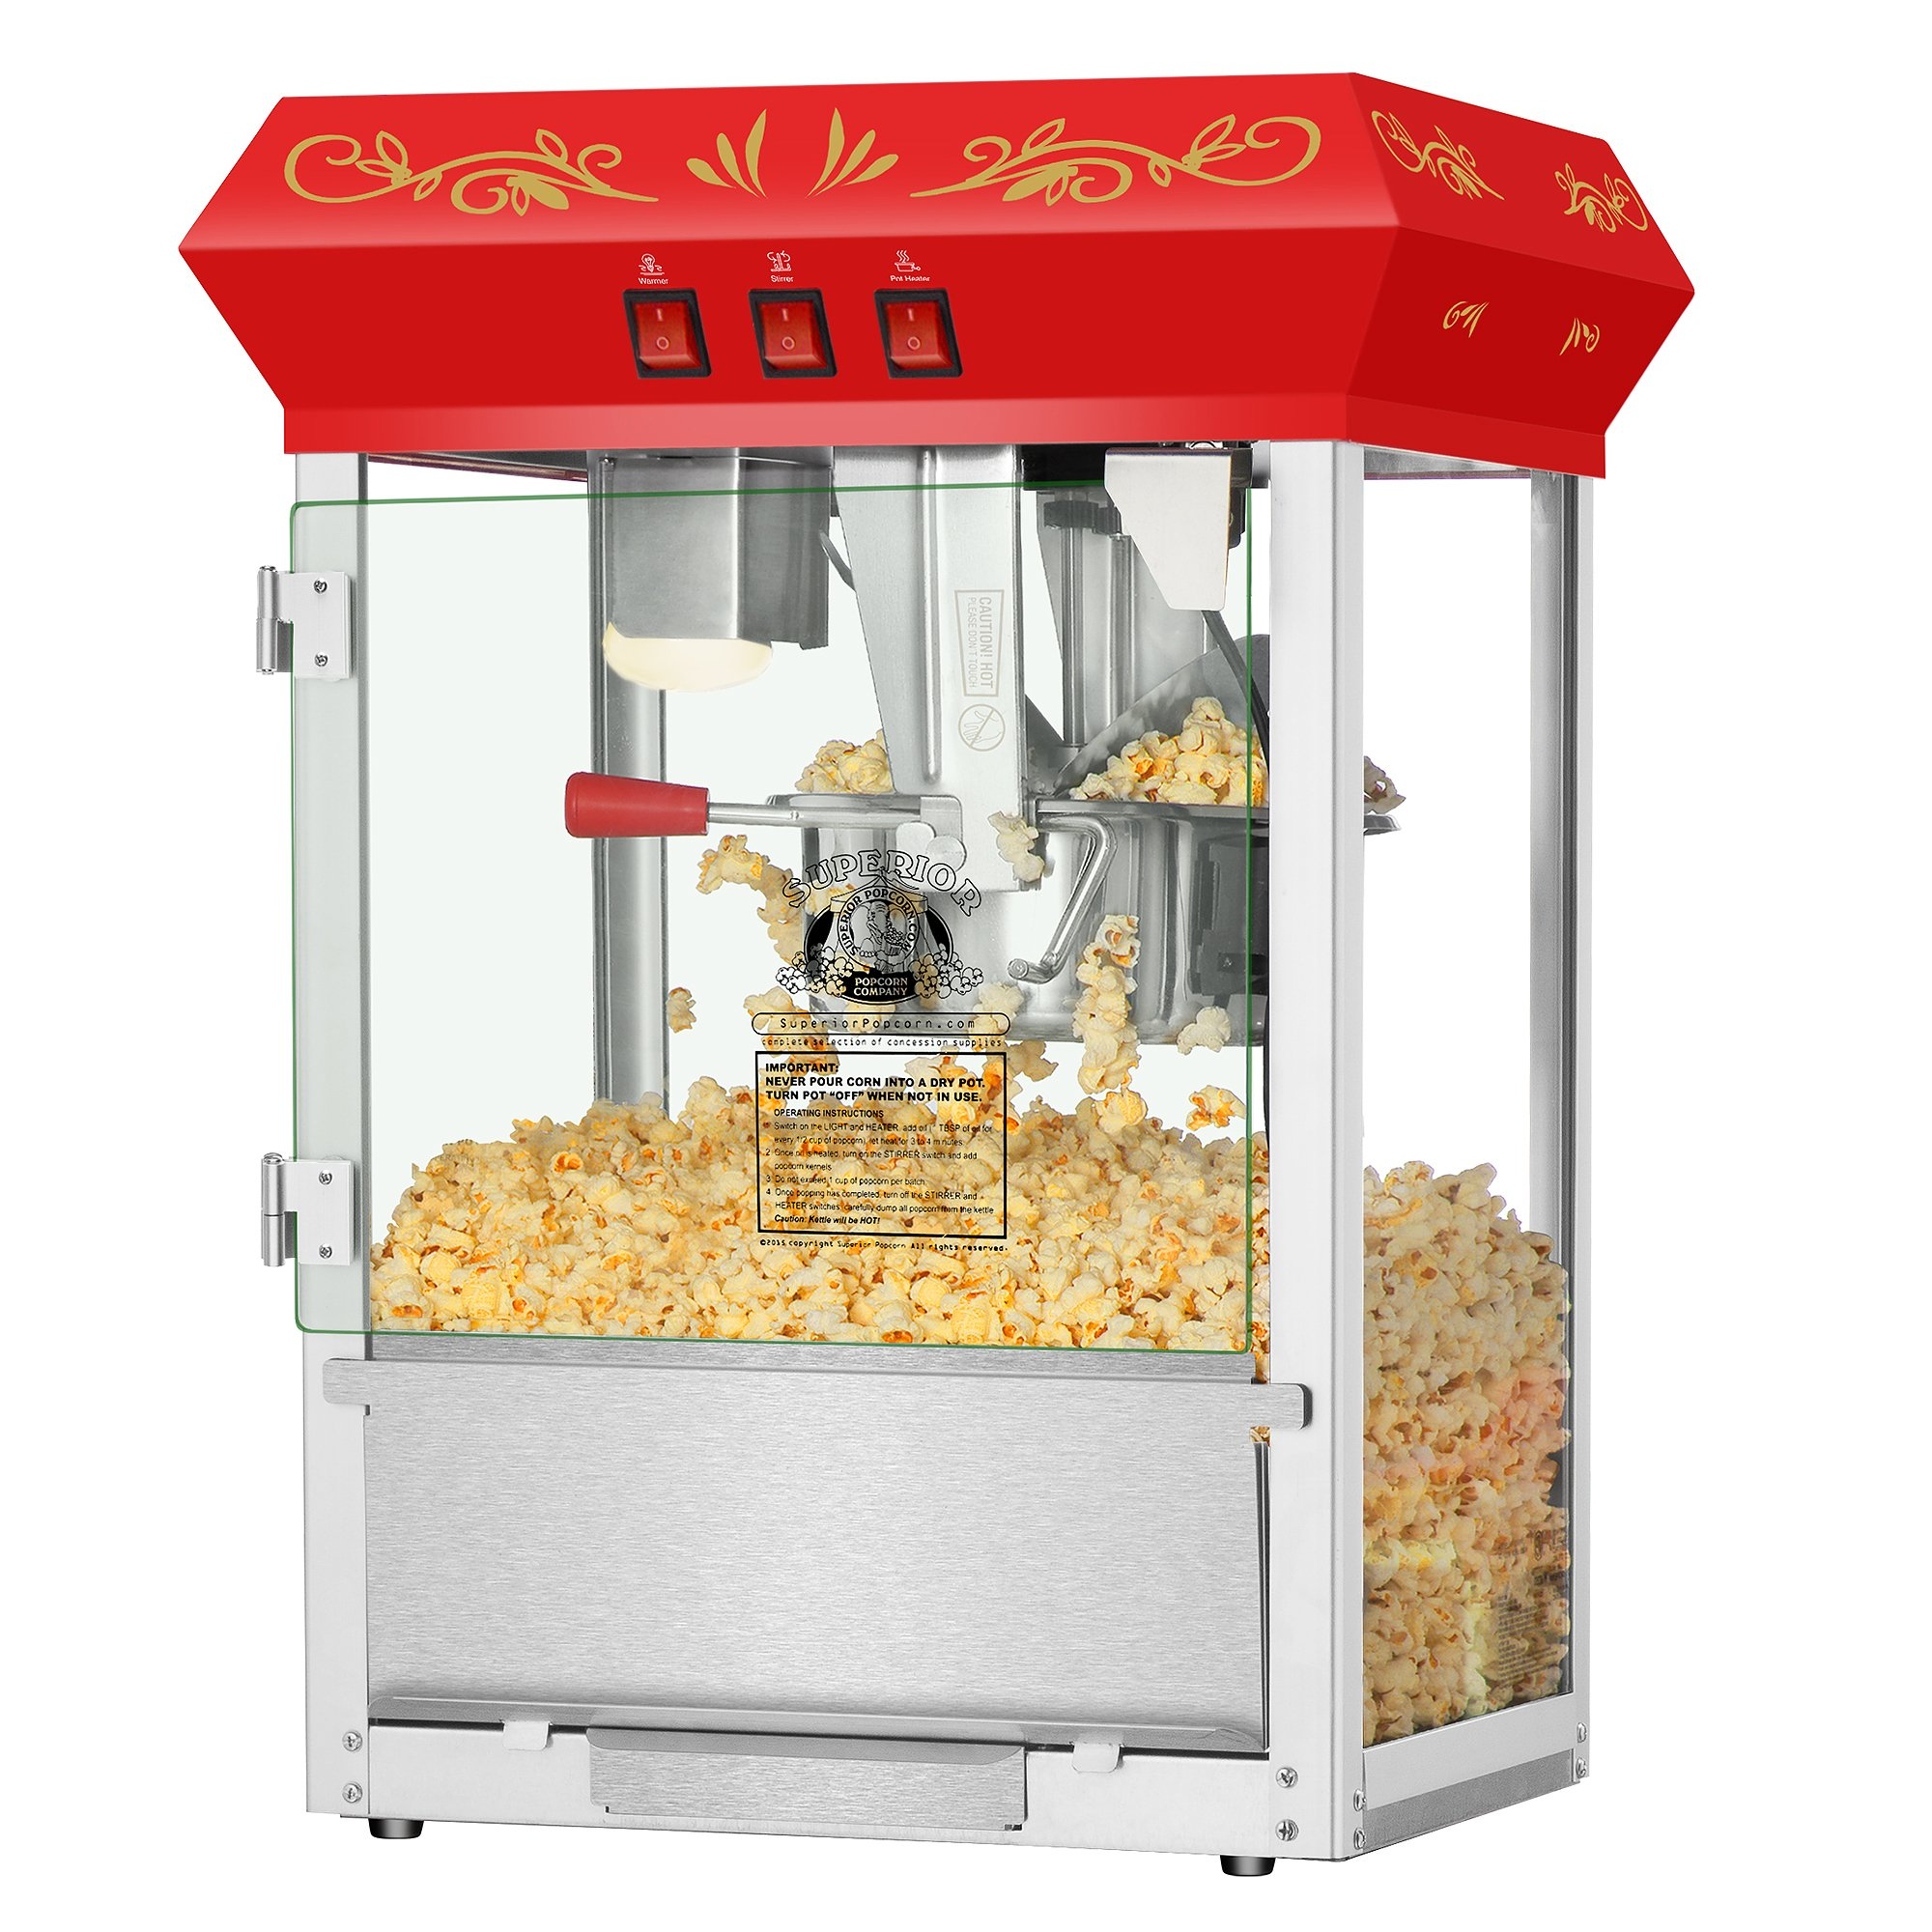 Superior Popcorn Company 4645 Spc Movienight Red Top 8Oz Movie Night Countertop Popper Machine, 8 Oz, Red